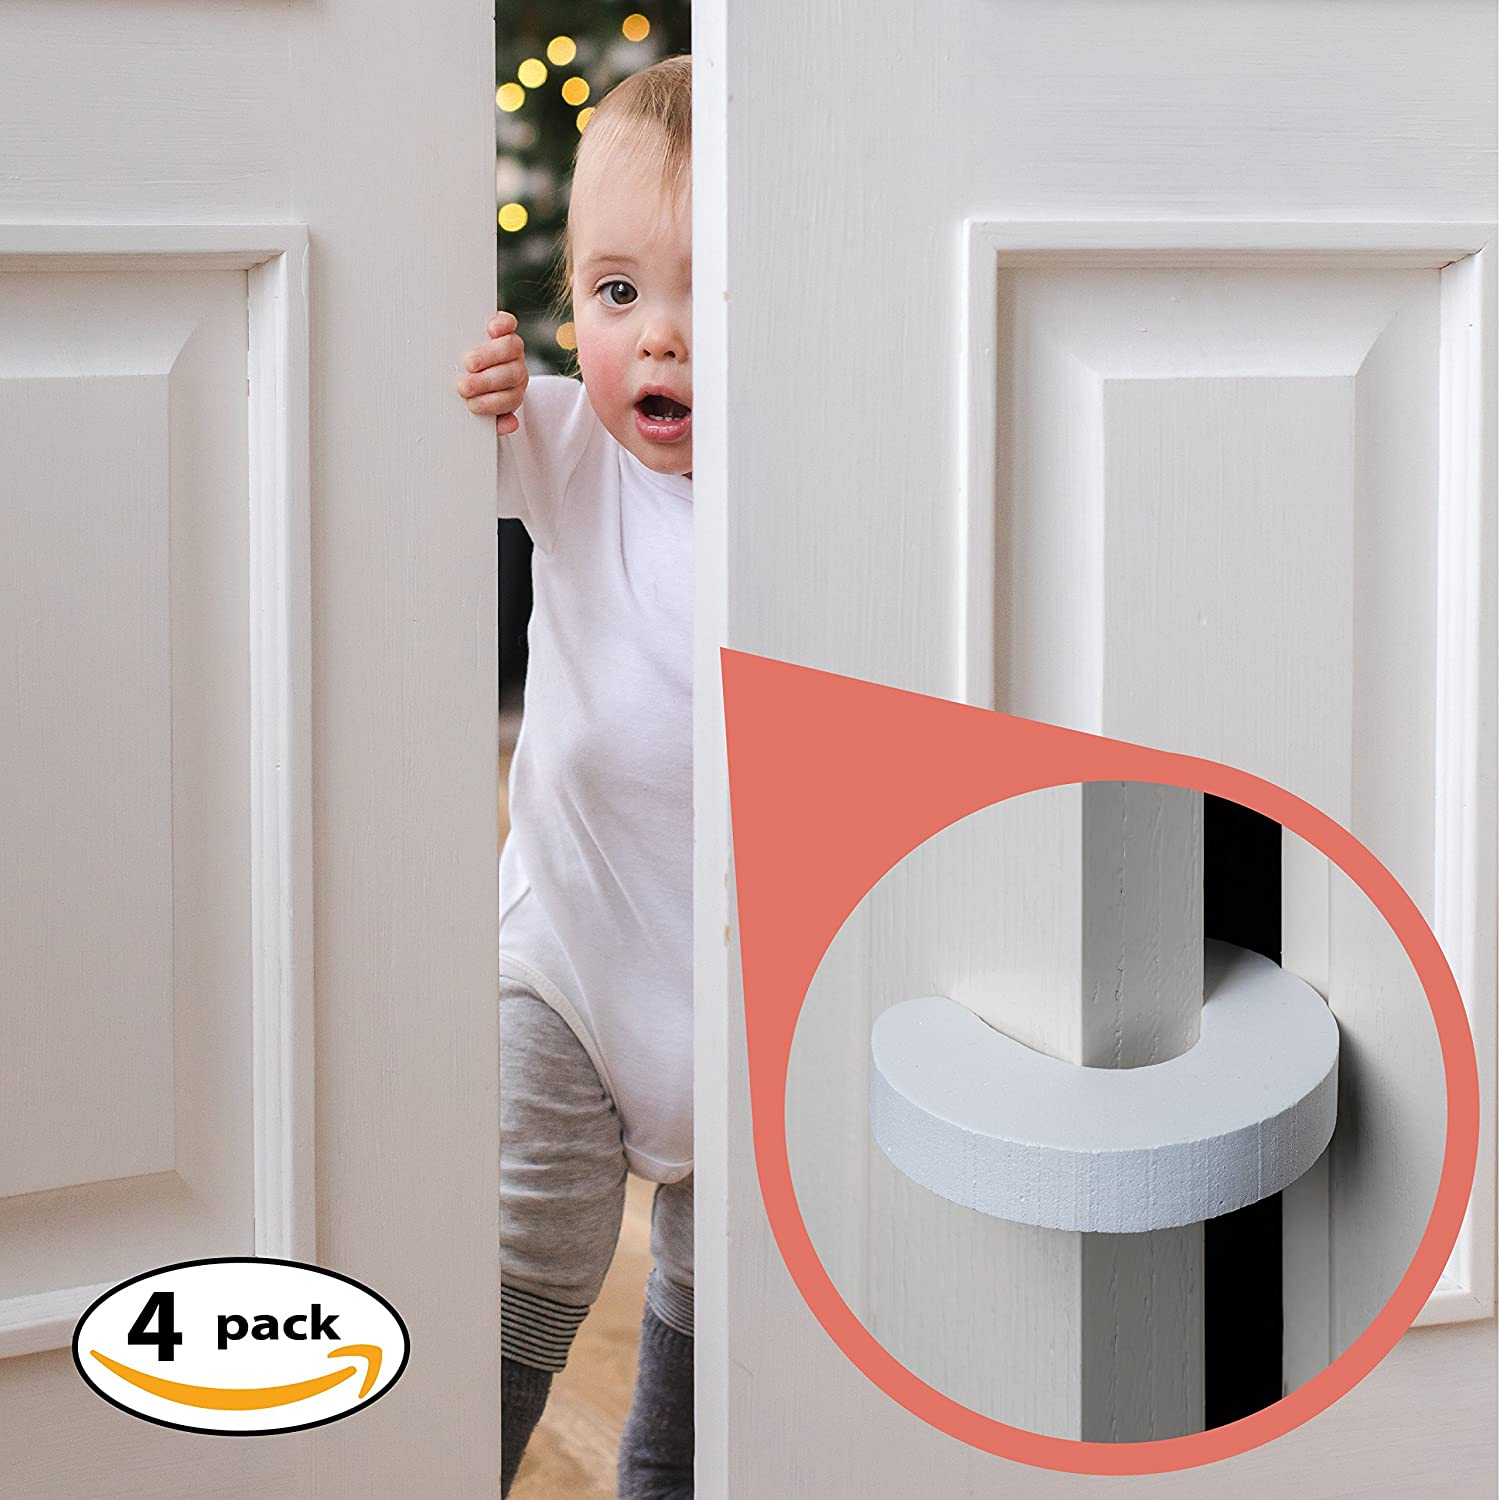 8pk - Finger Pinch Guard - 4pk. Baby Proofing Doors Made Easy with Soft Yet Durable Foam Door Stopper. Prevents Finger Pinch Injuries, Slamming Doors, and Child or Pet from, Child Safety Cabinet Lock moreideas